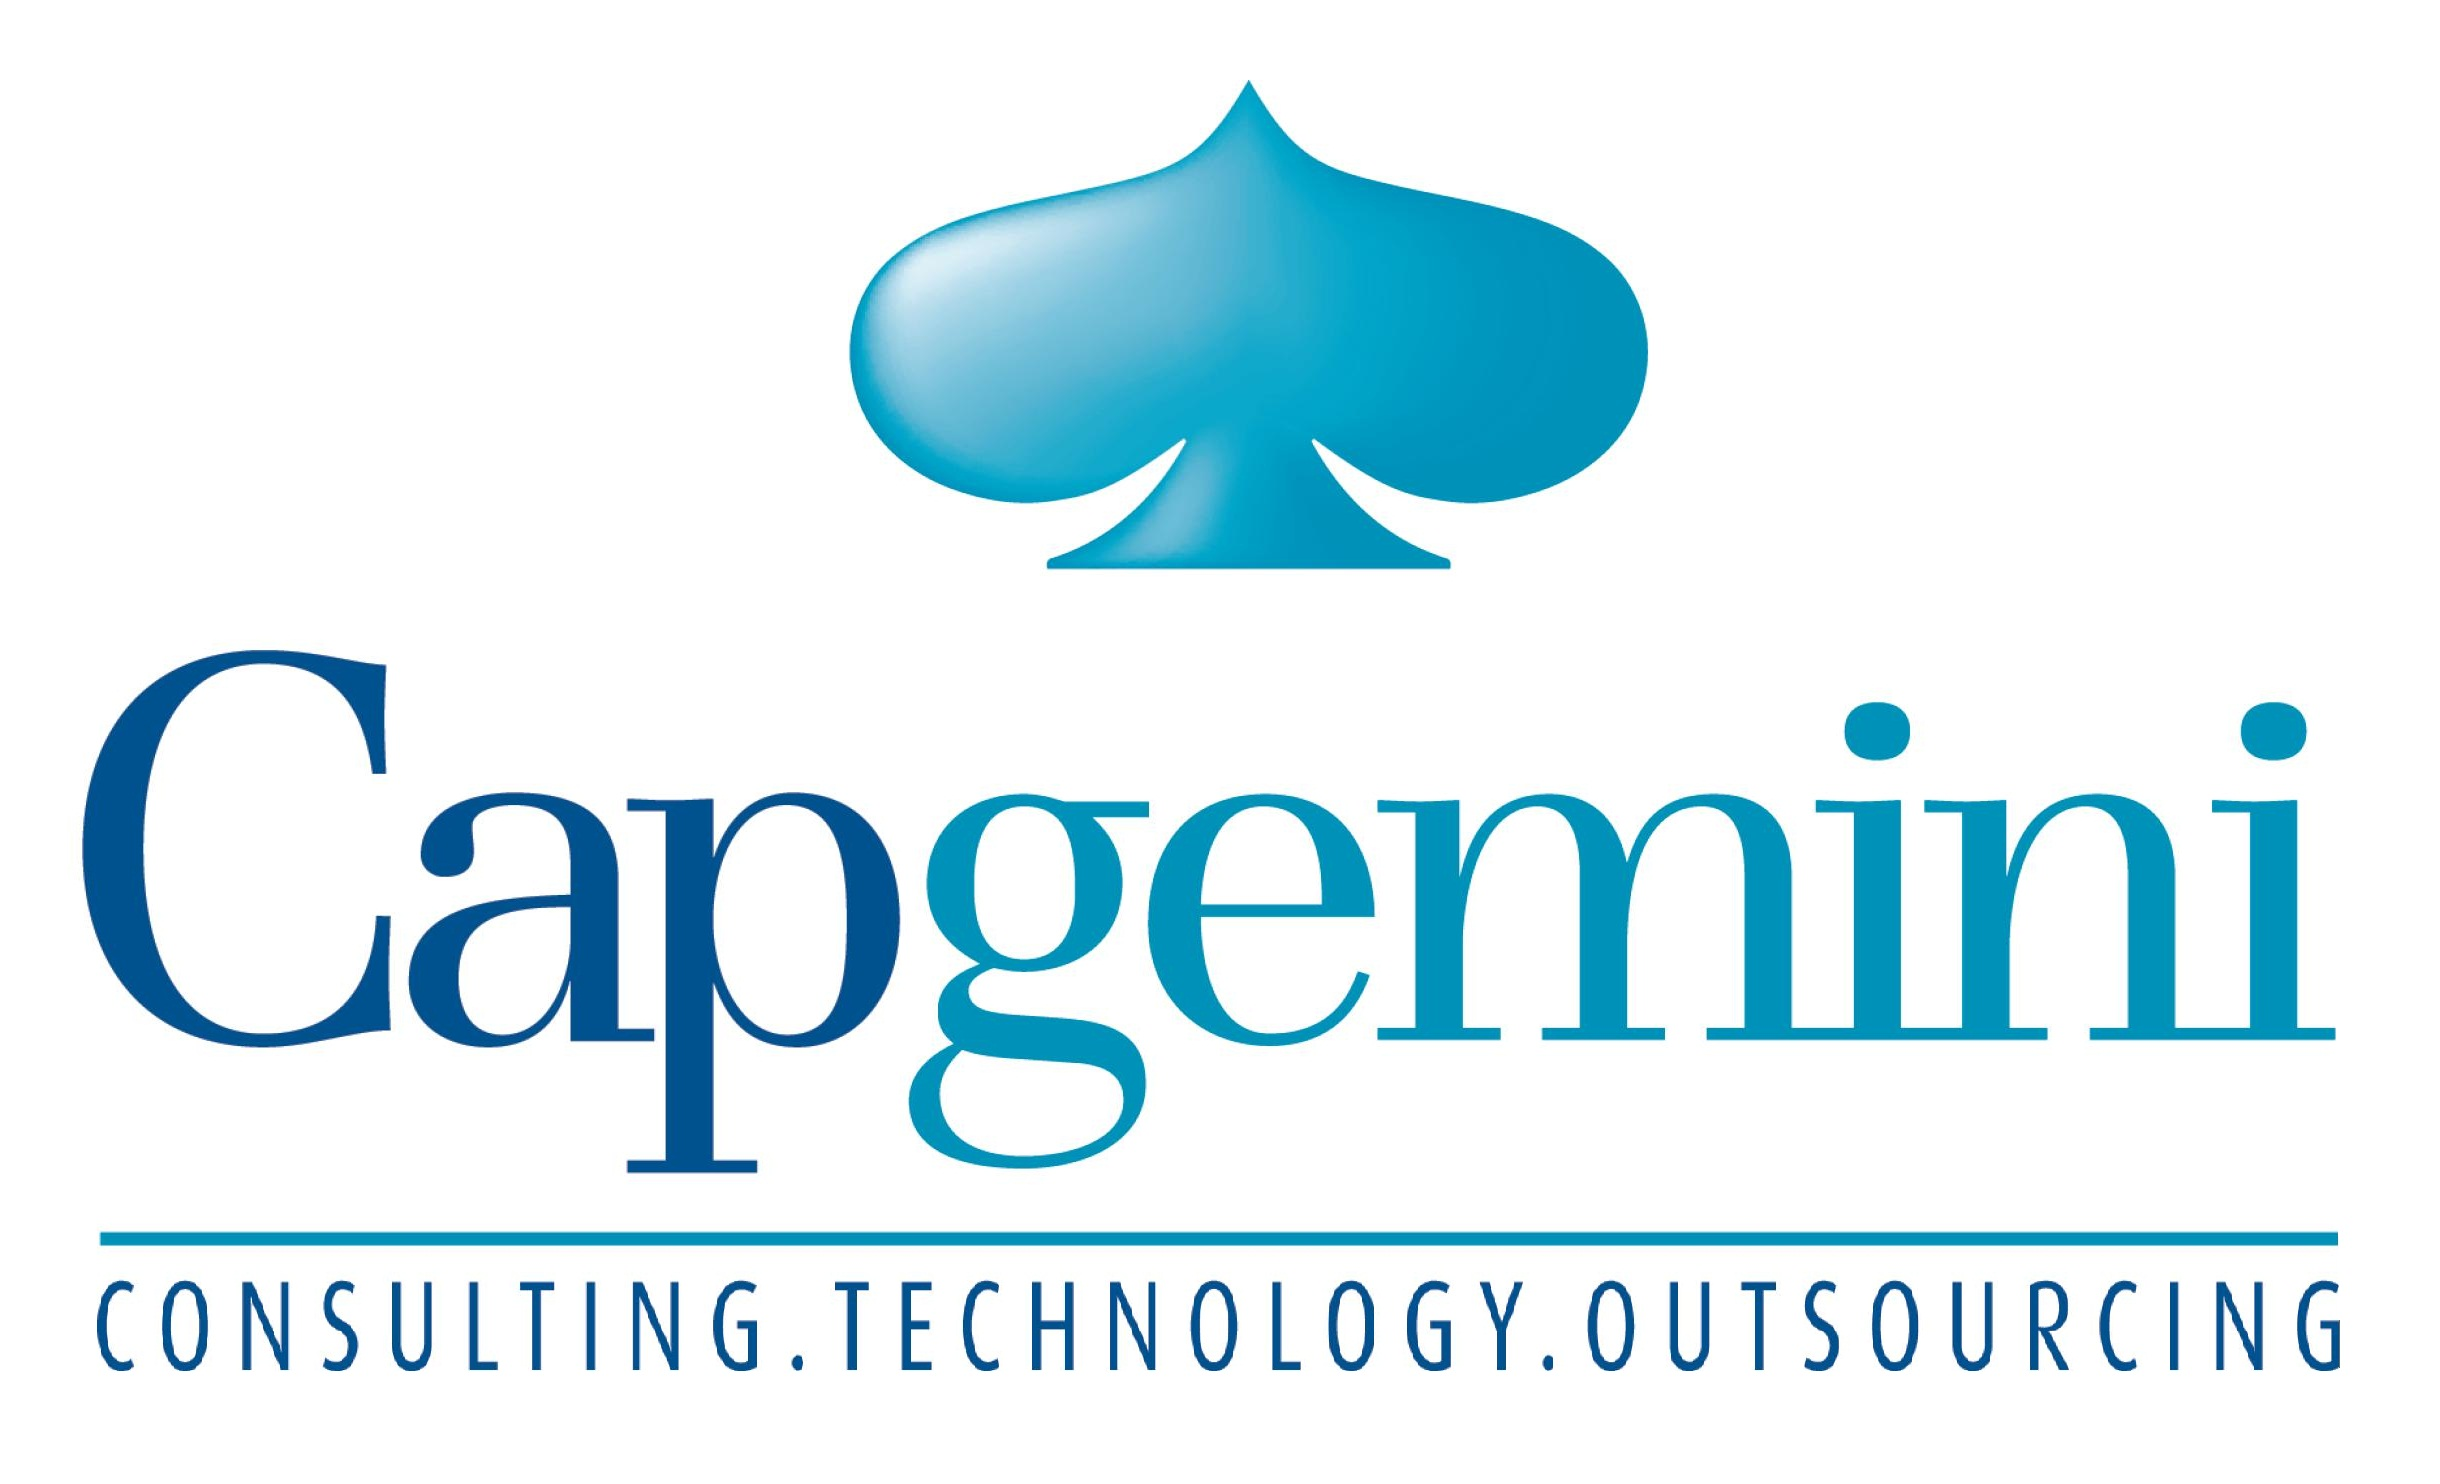 Capgemini Consulting (Financial Services Academy Student Insight Event) - 16/11/16